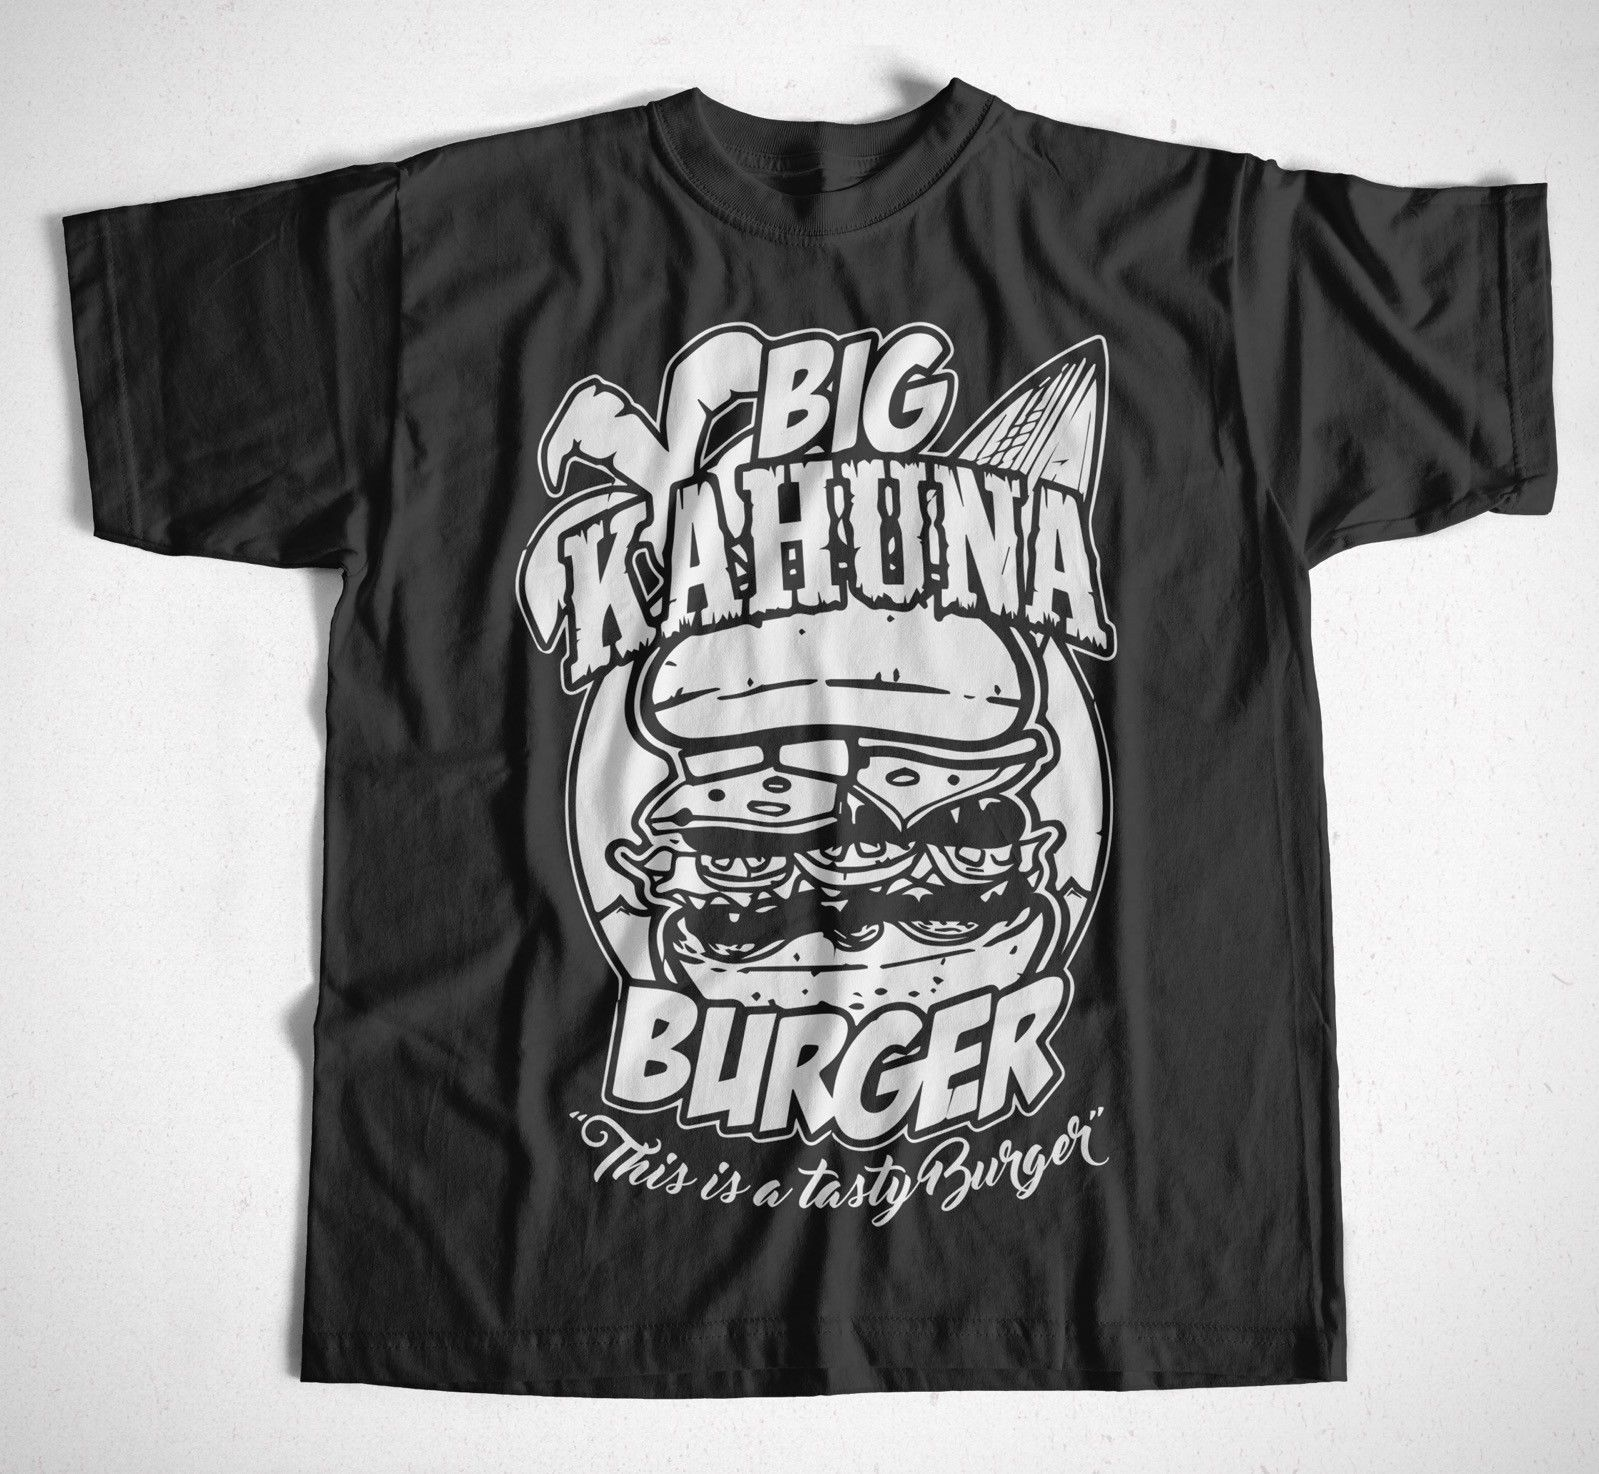 t-shirt-big-kahuna-burger-rot-jules-winnfield-font-b-tarantino-b-font-pulp-fiction-movie-harajuku